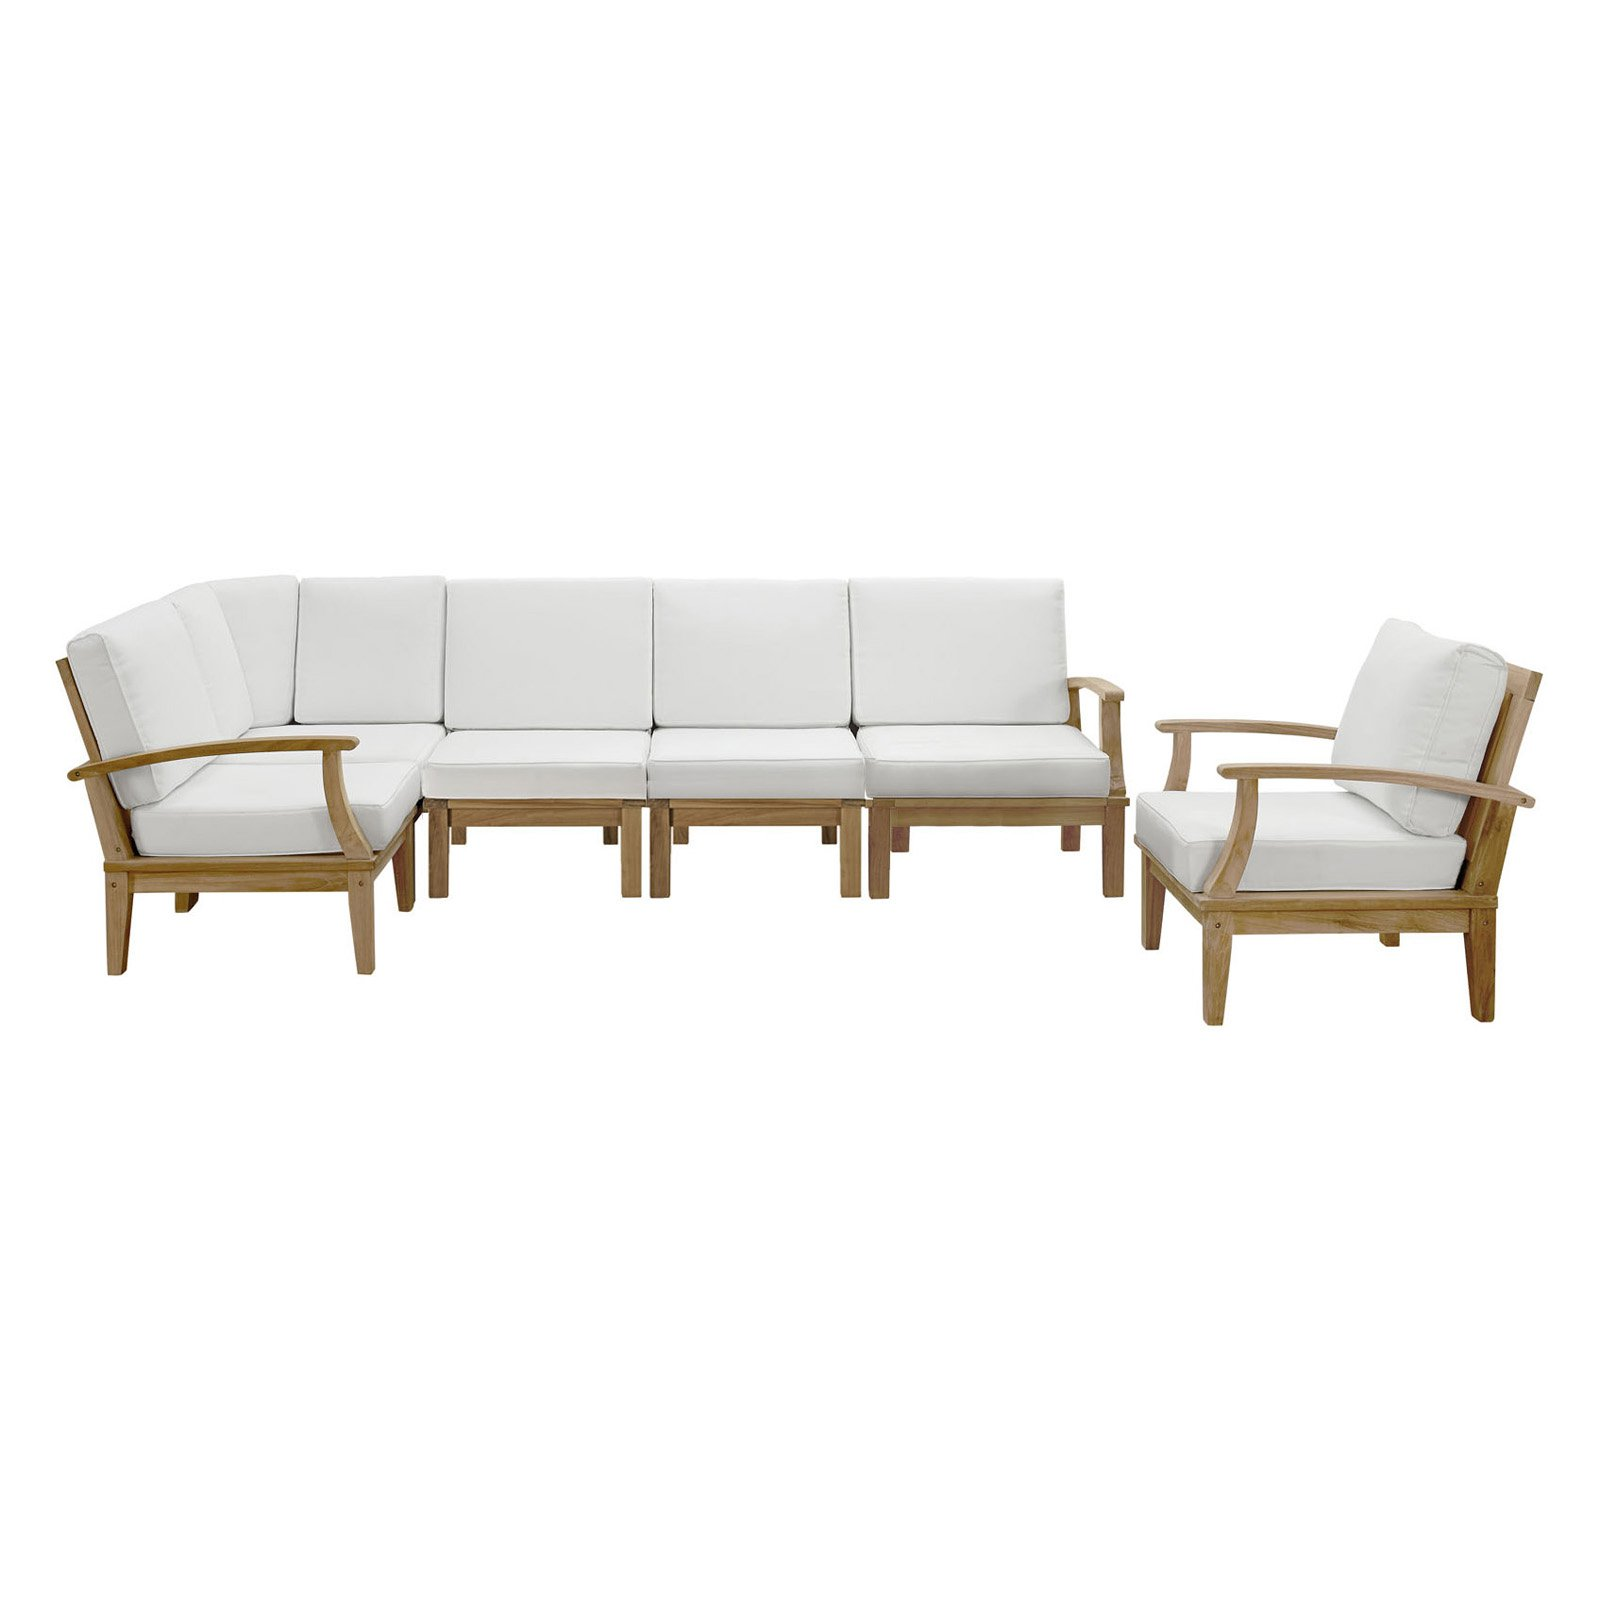 Modway Marina 6 Piece Outdoor Patio Teak Sofa Set in Natural White by Modway